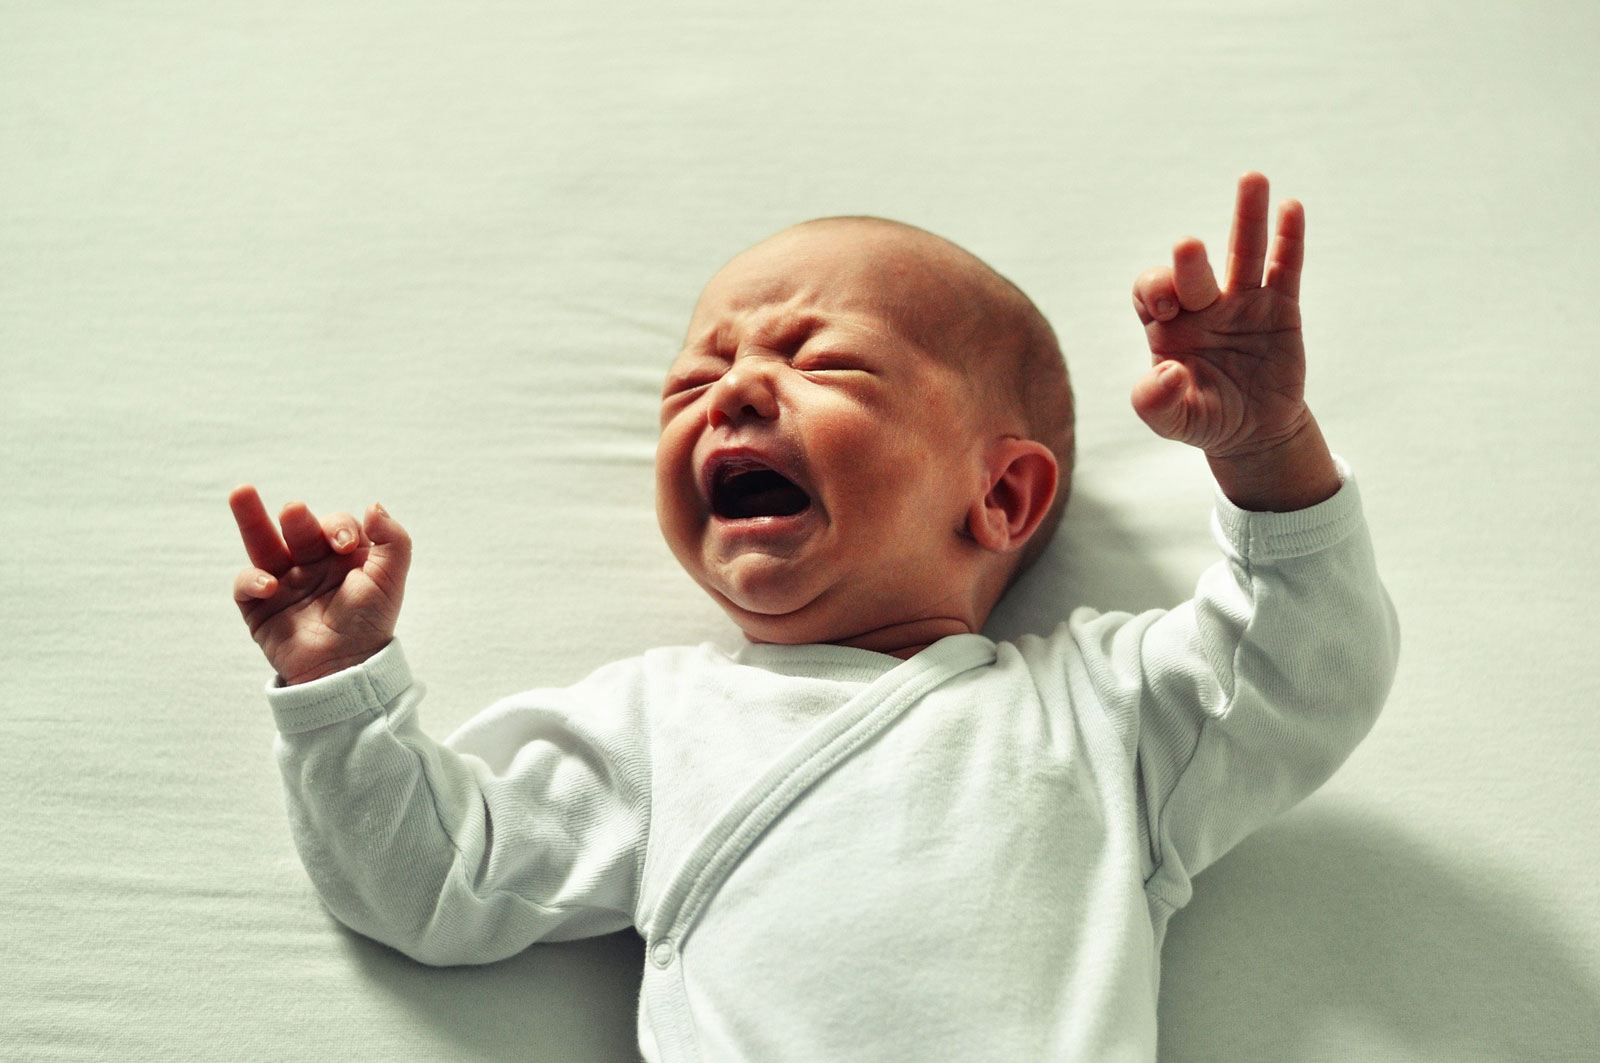 Baby Crying | 7 Helpful Things To Try When Your Baby Won't Stop Crying